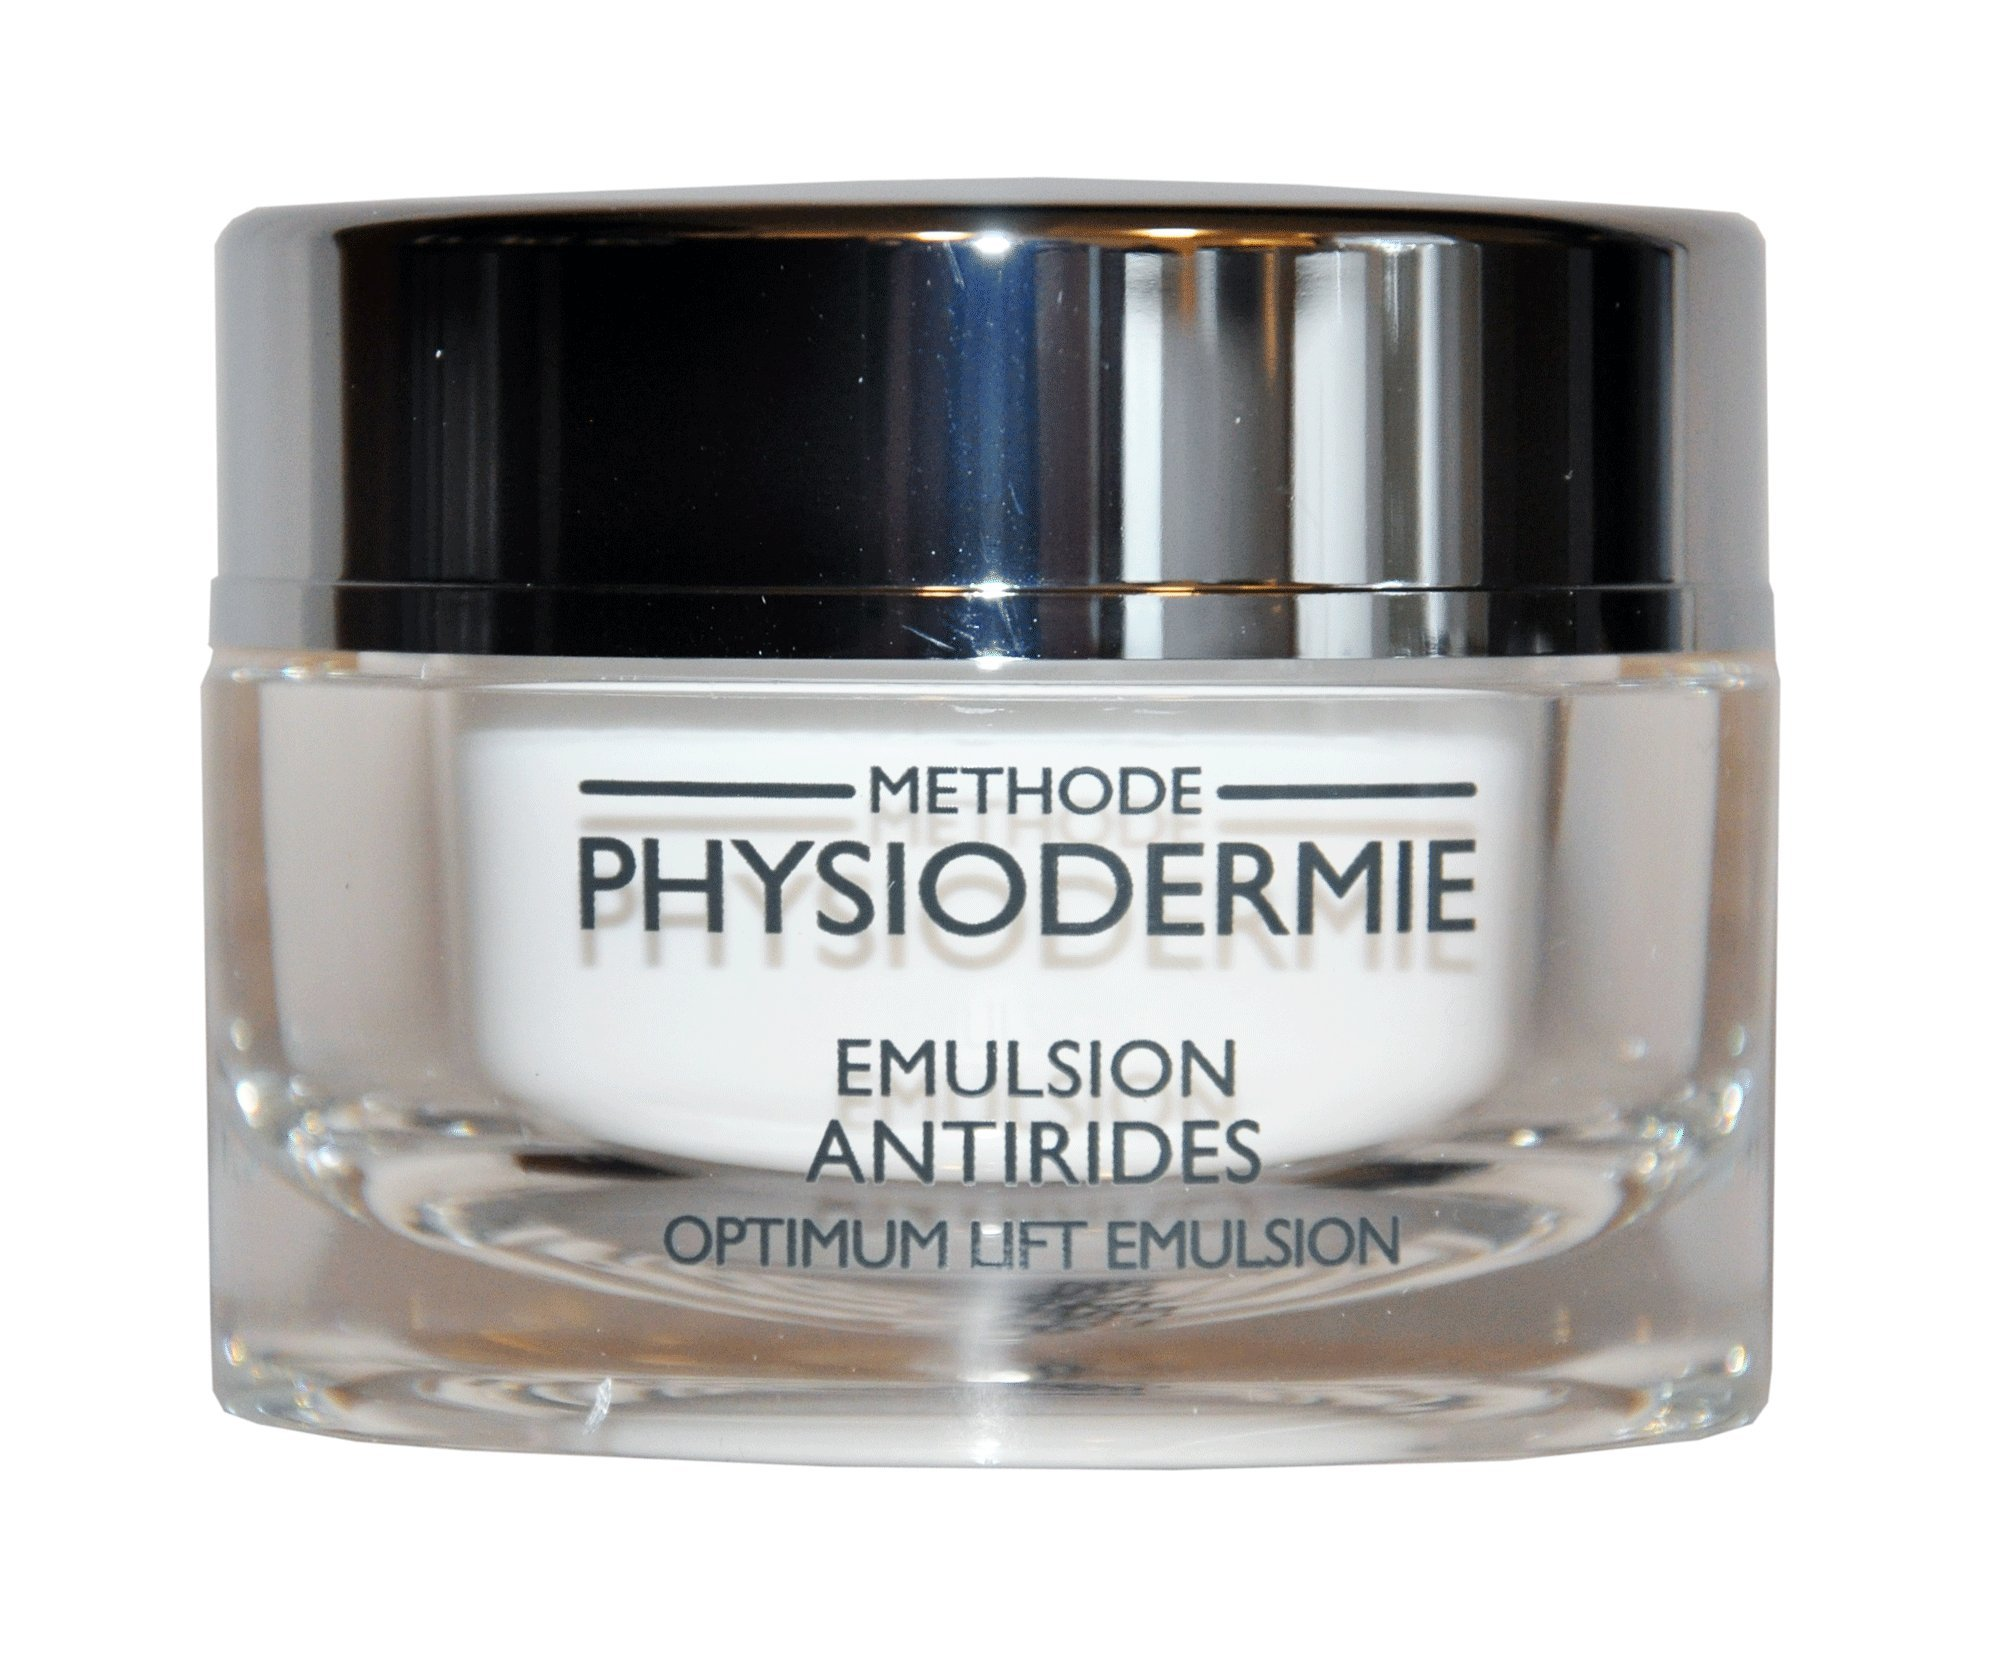 Physiodermie Optimum Lift Emulsion 1.7 fl.oz - BRAND NEW by Methode Physiodermie